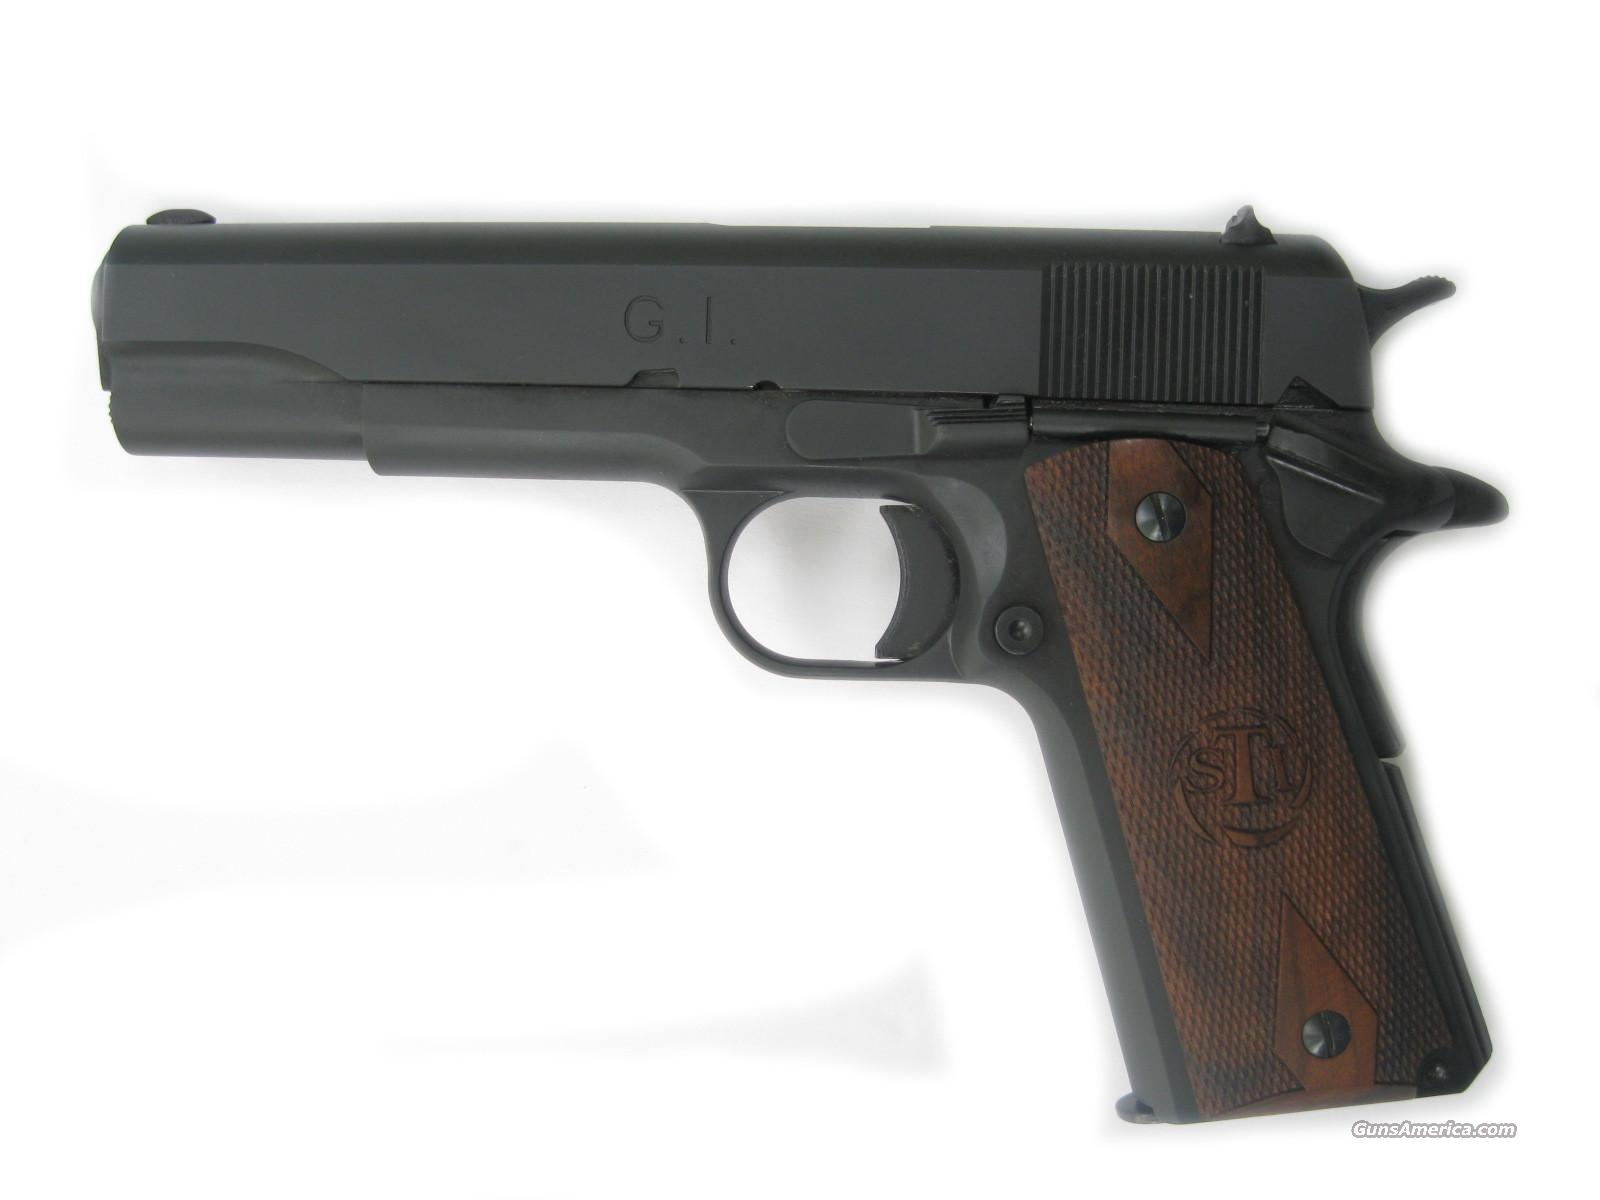 STI G.I. 45 Acp Classic Governement 1911 *NEW* ... For Sale